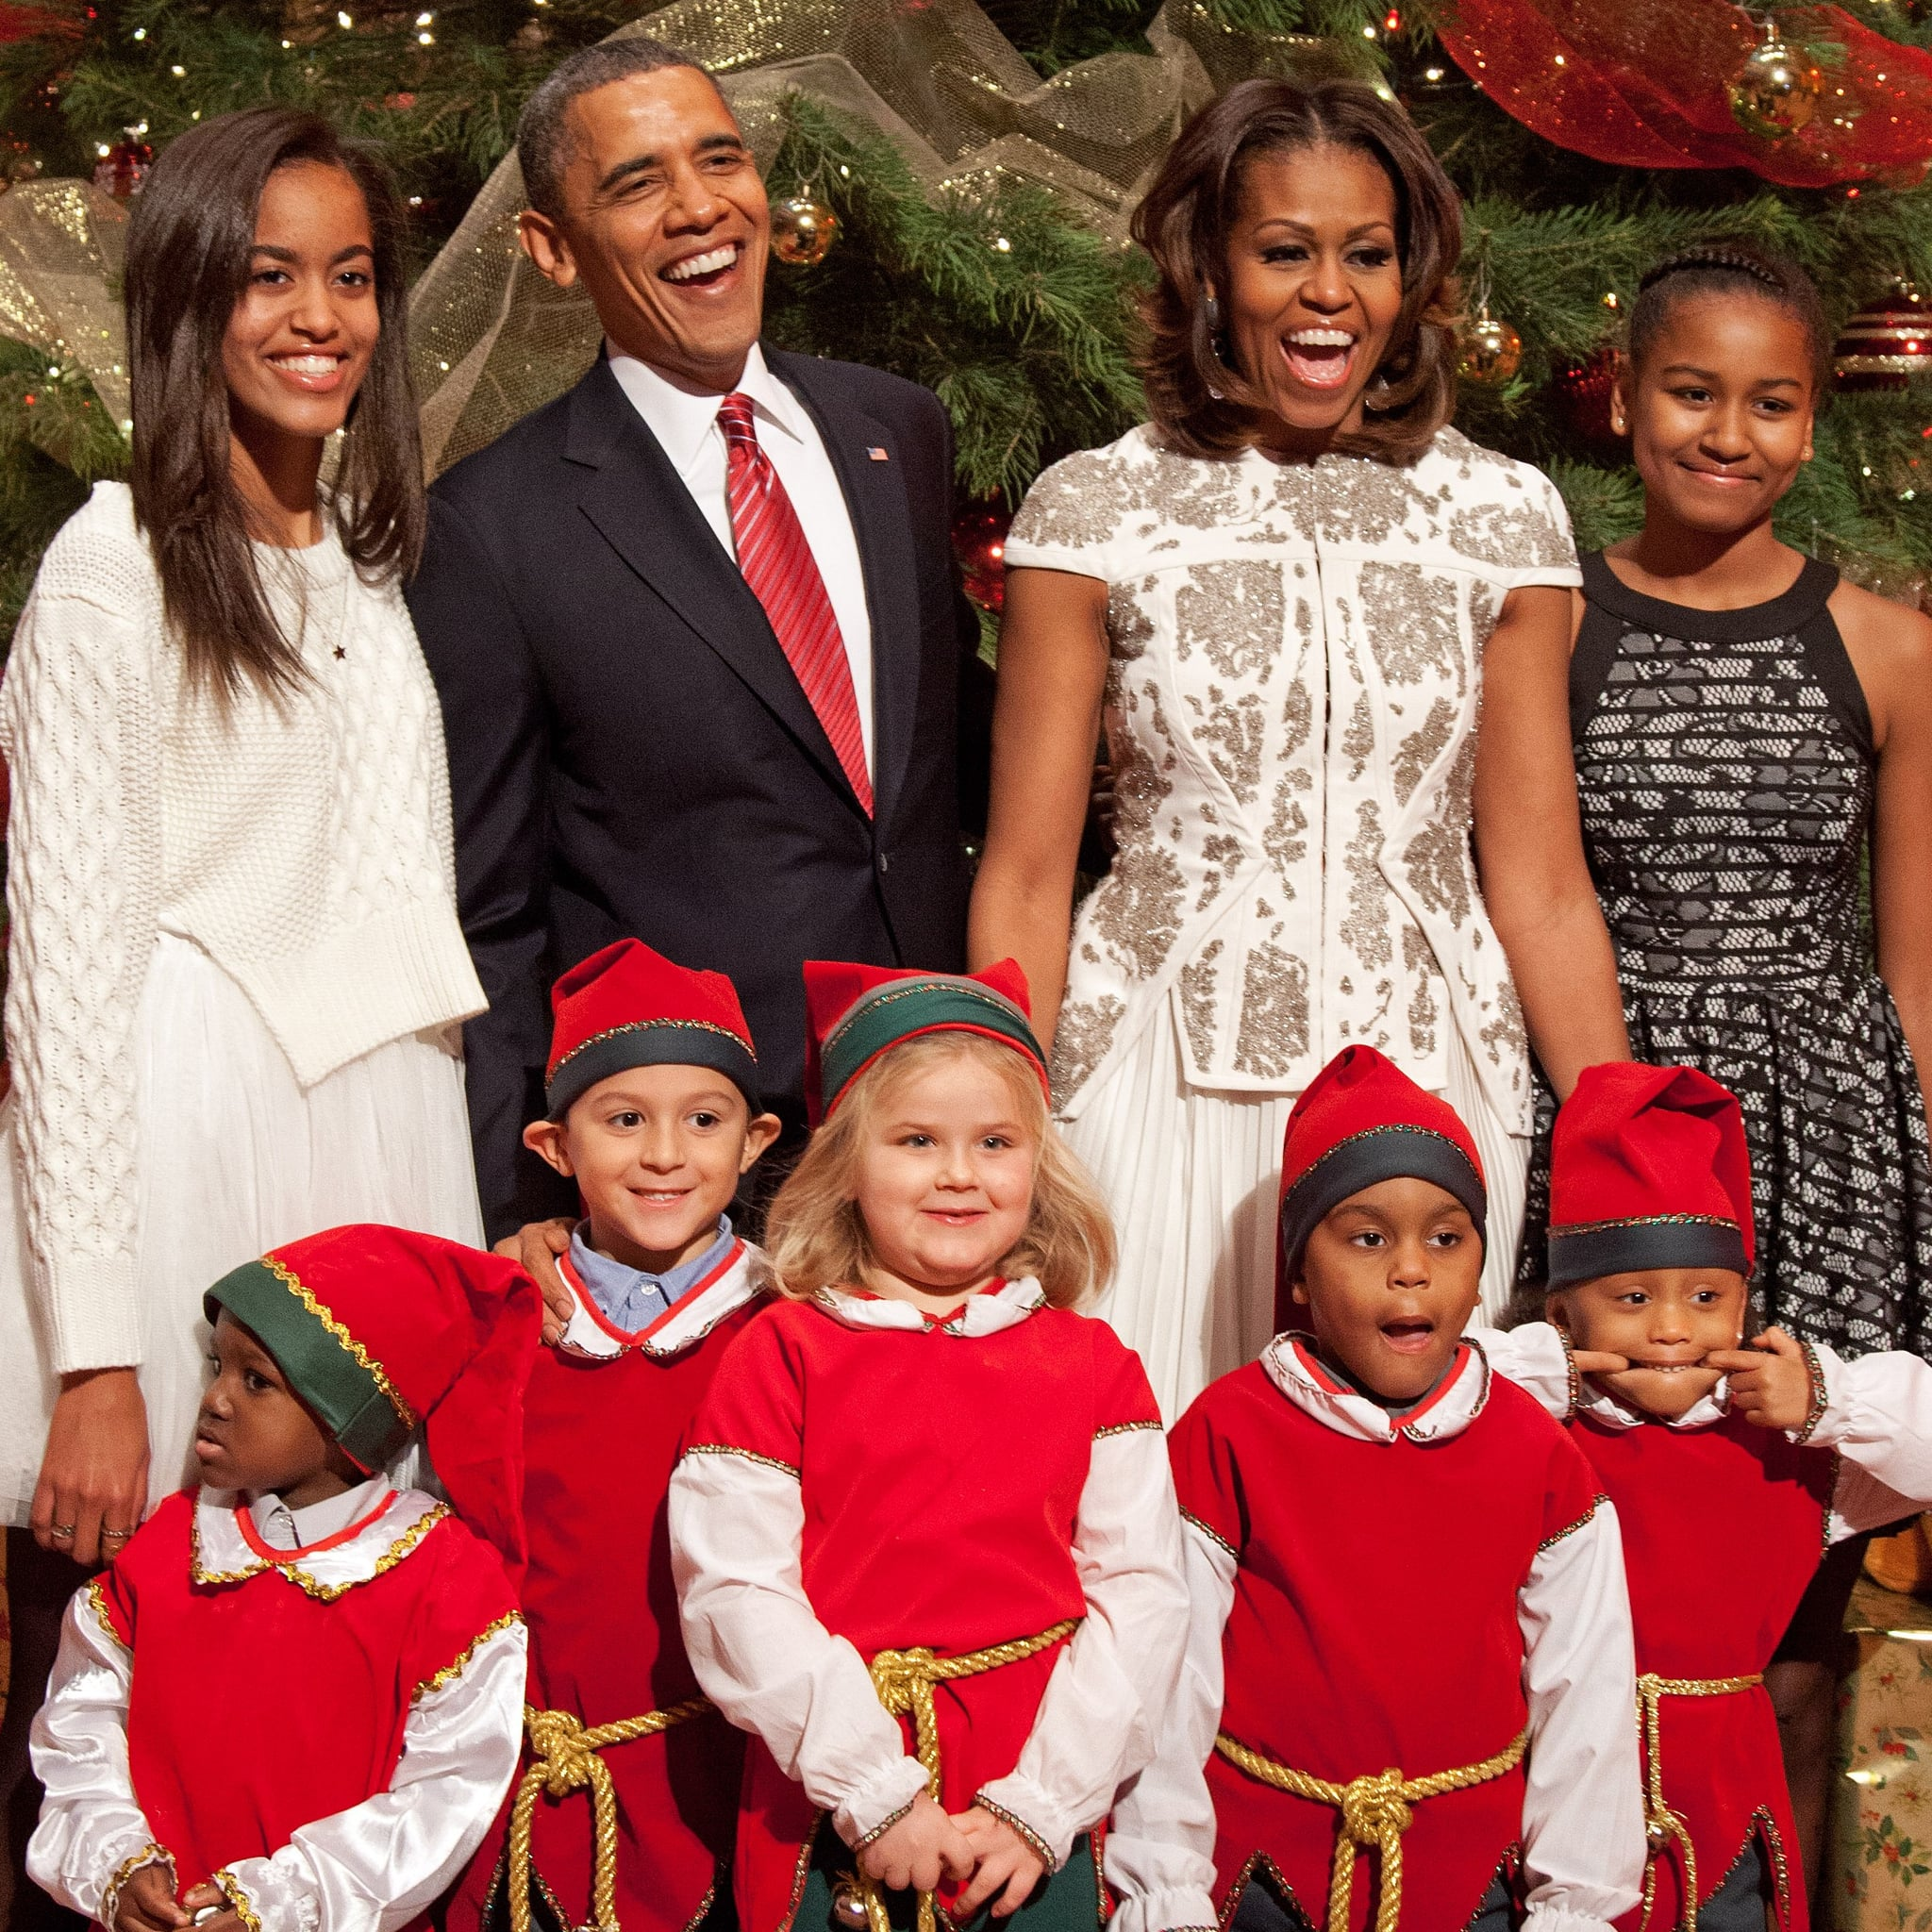 Obama Family Christmas Card December 2016 | POPSUGAR Celebrity